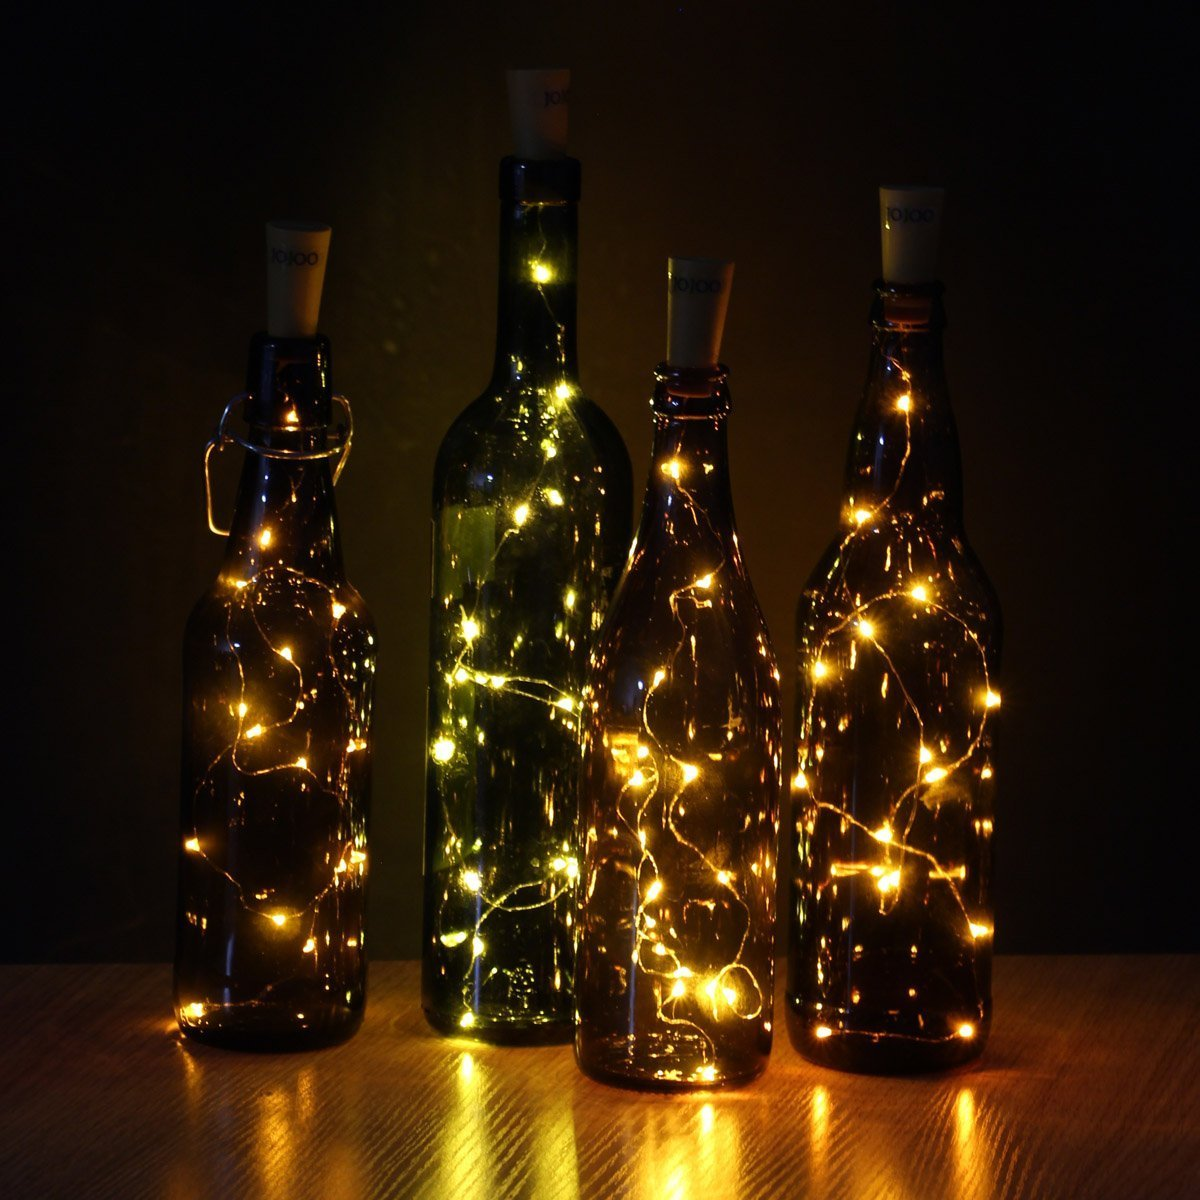 wine lighting. Amazon.com: JOJOO Set Of 4 Warm White Wine Bottle Cork Lights - 32inch/ 80cm 15 LED Copper Wire String Starry For DIY, Party, Lighting